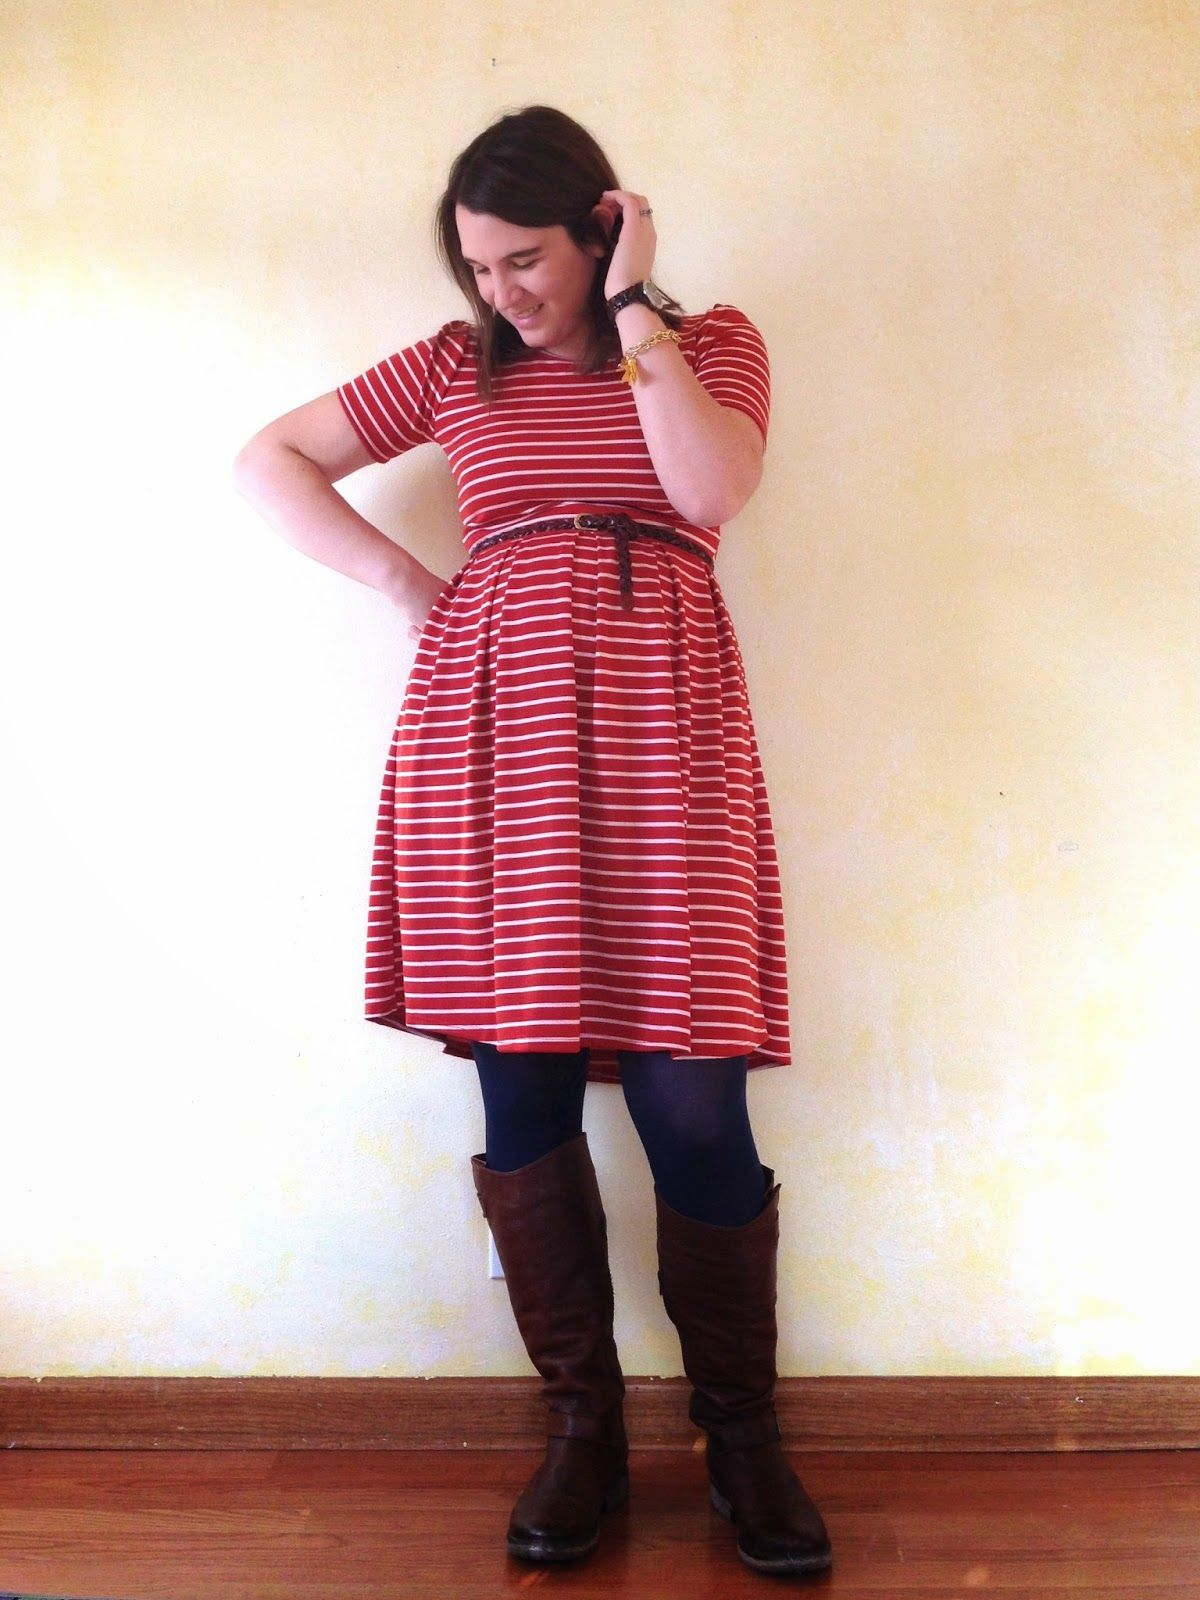 40c426377 bybmg  LuLaRoe Amelia dress - red striped dress with navy tights and riding  boots